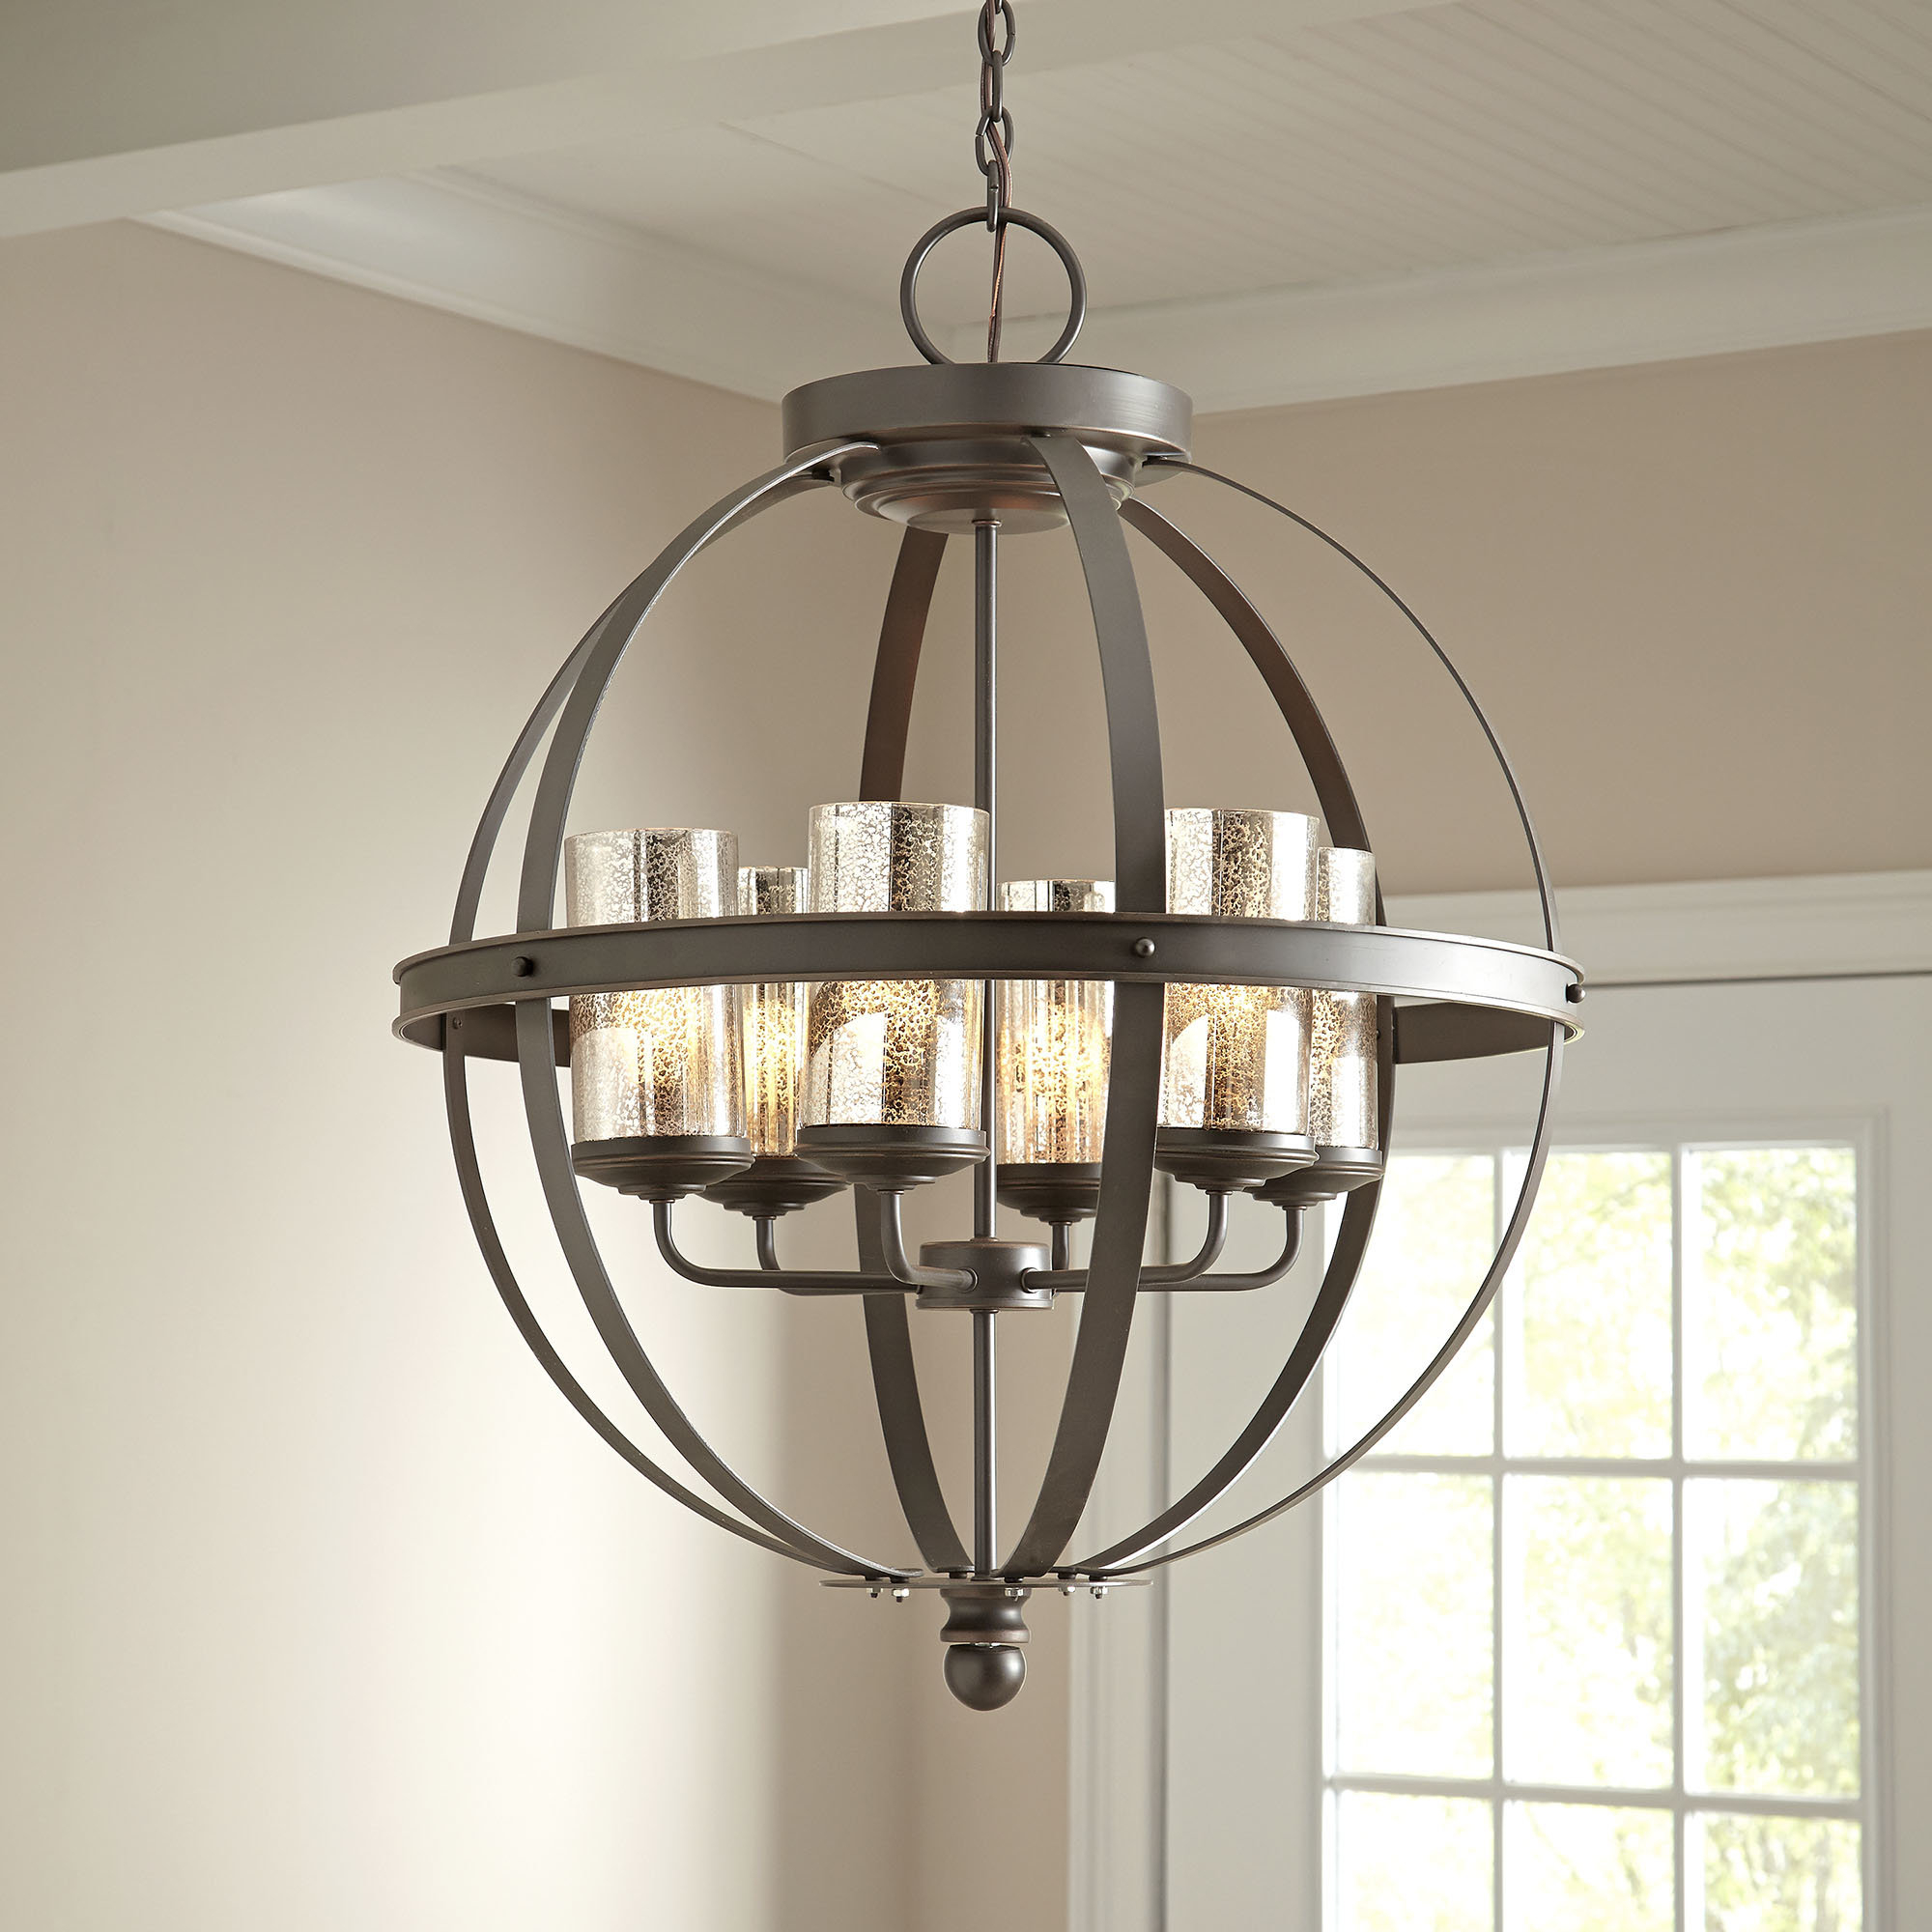 Donna 6 Light Globe Chandelier Intended For La Sarre 3 Light Globe Chandeliers (View 15 of 30)